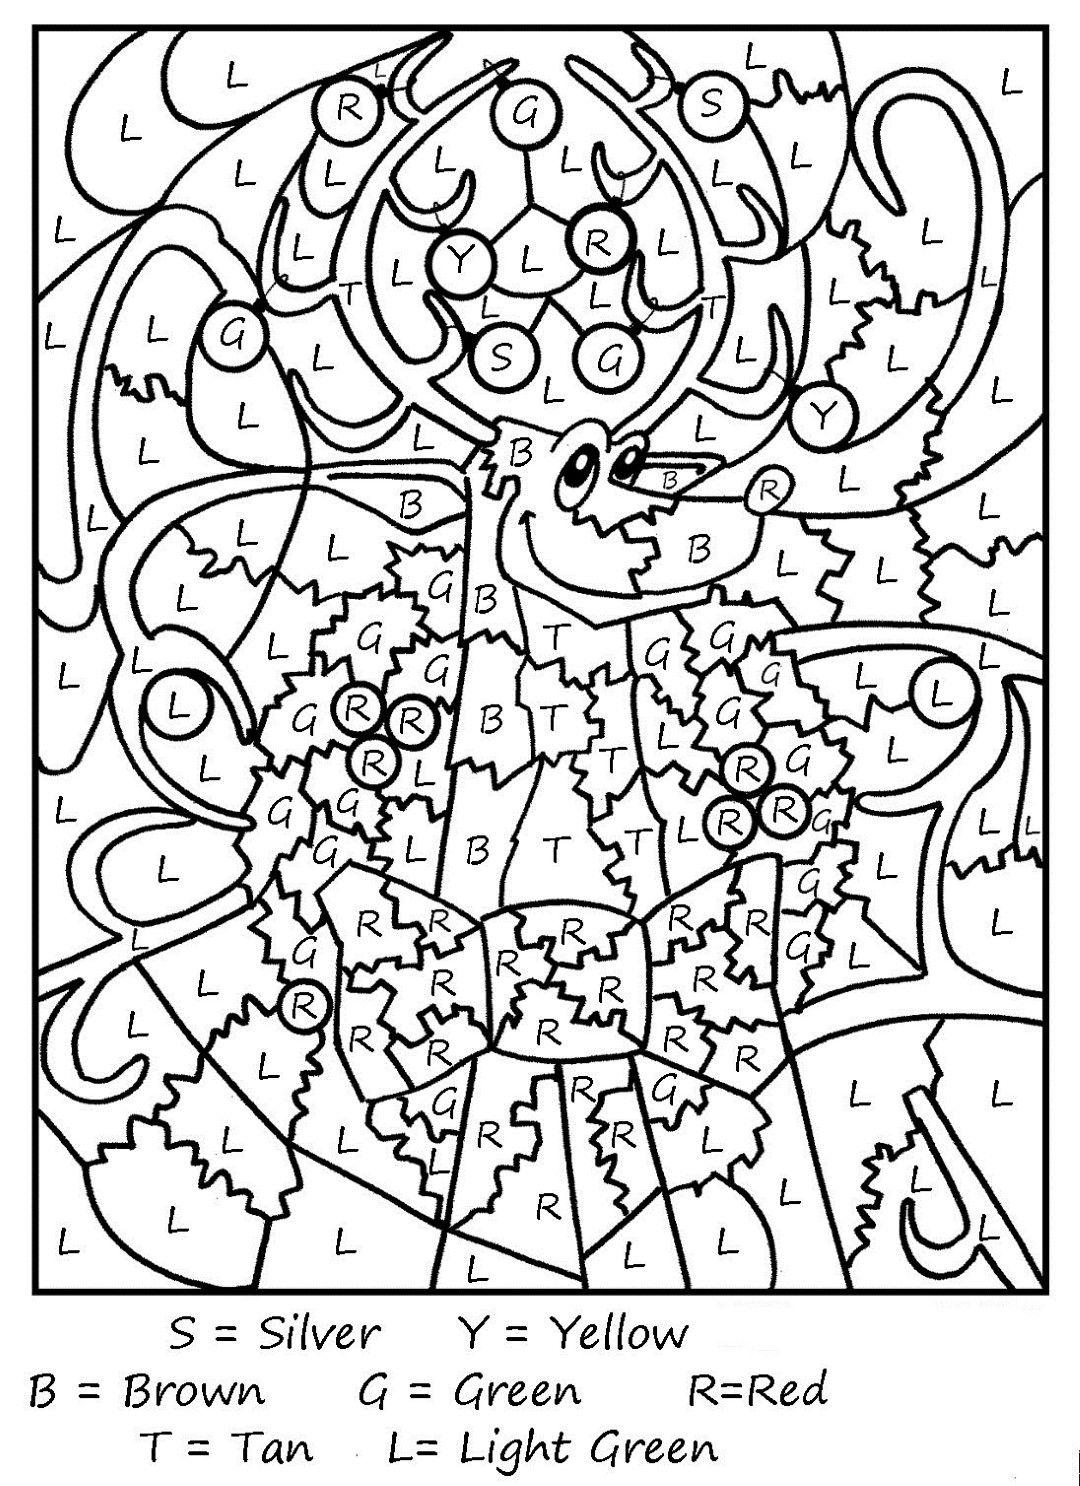 Coloring Rocks Merry Christmas Coloring Pages Santa Coloring Pages Printable Christmas Coloring Pages